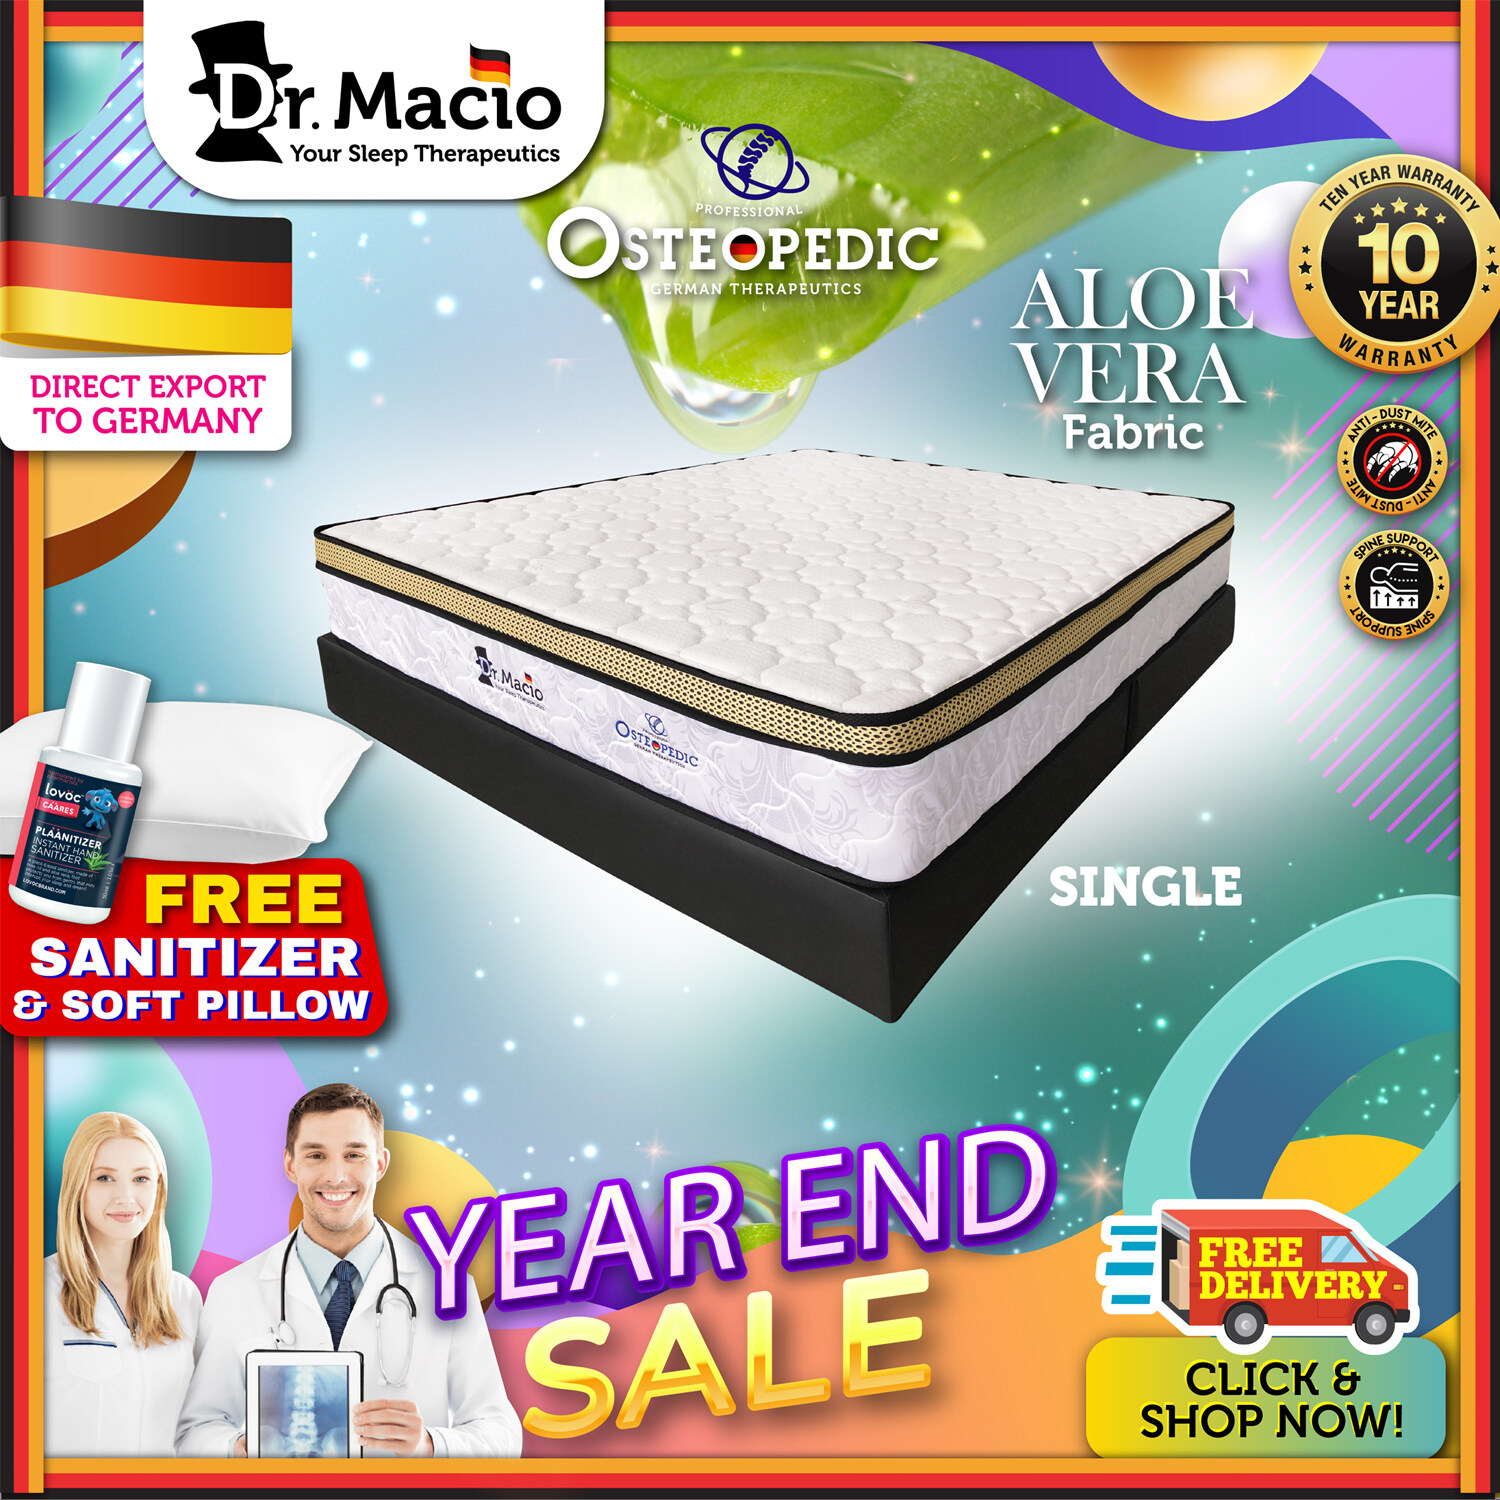 [ Free Shipping ] Dr Macio Osteopedic  (Single) (Super Single) (Queen) (King) Mattress Ready Stock / Tilam Dr Macio 10 years warranty anti dustmite FREE Pillow [ Fast Delivery ] [ Deliver in CMCO ]